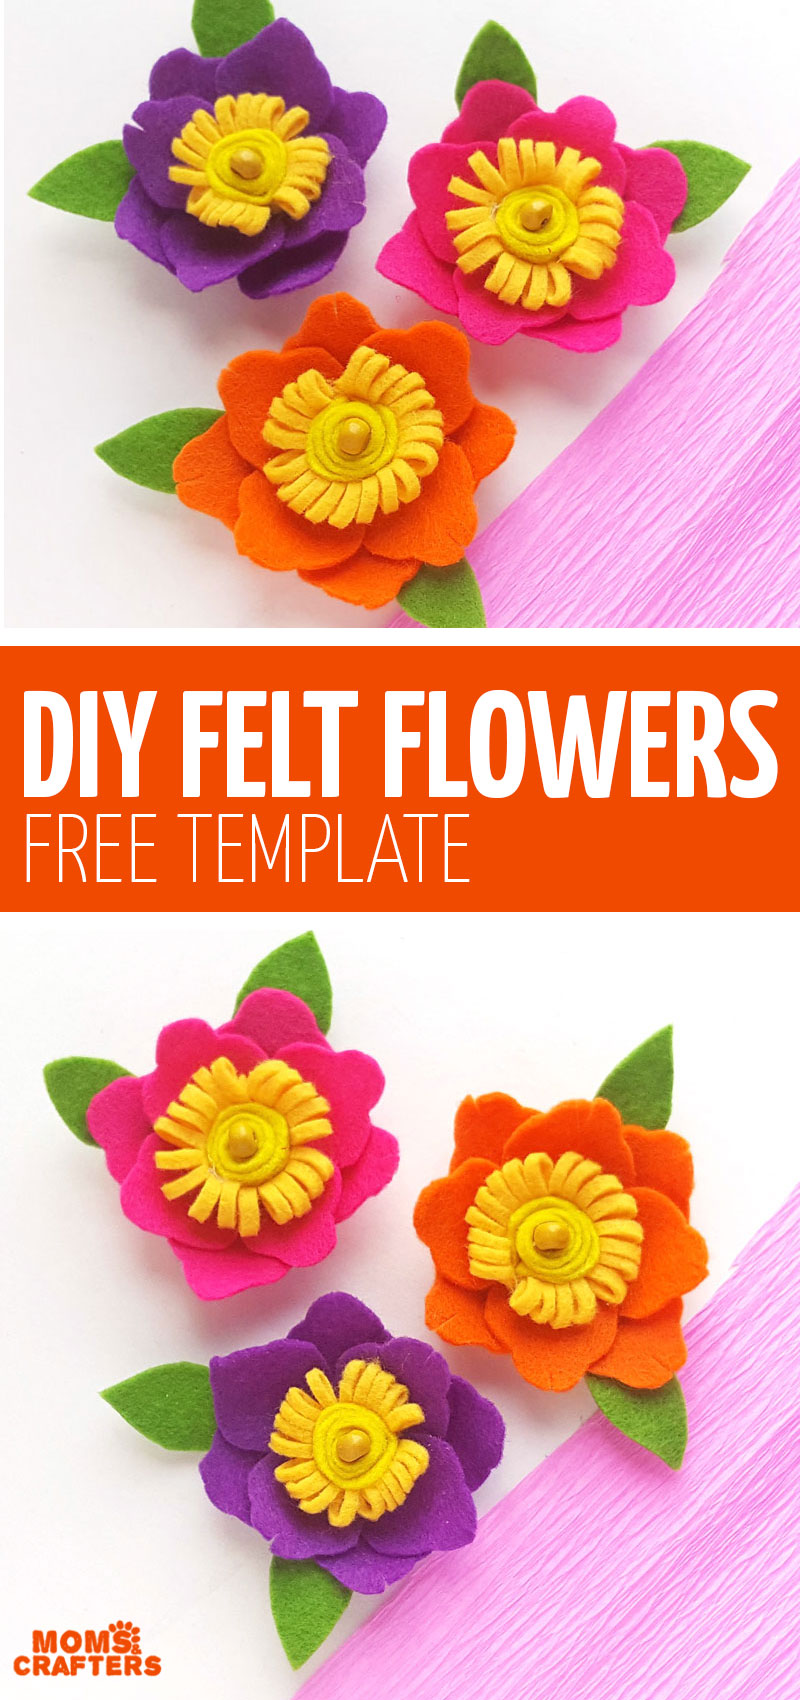 image relating to Flowers Printable titled Do-it-yourself Felt Bouquets - Absolutely free Printable Template * Mothers and Crafters